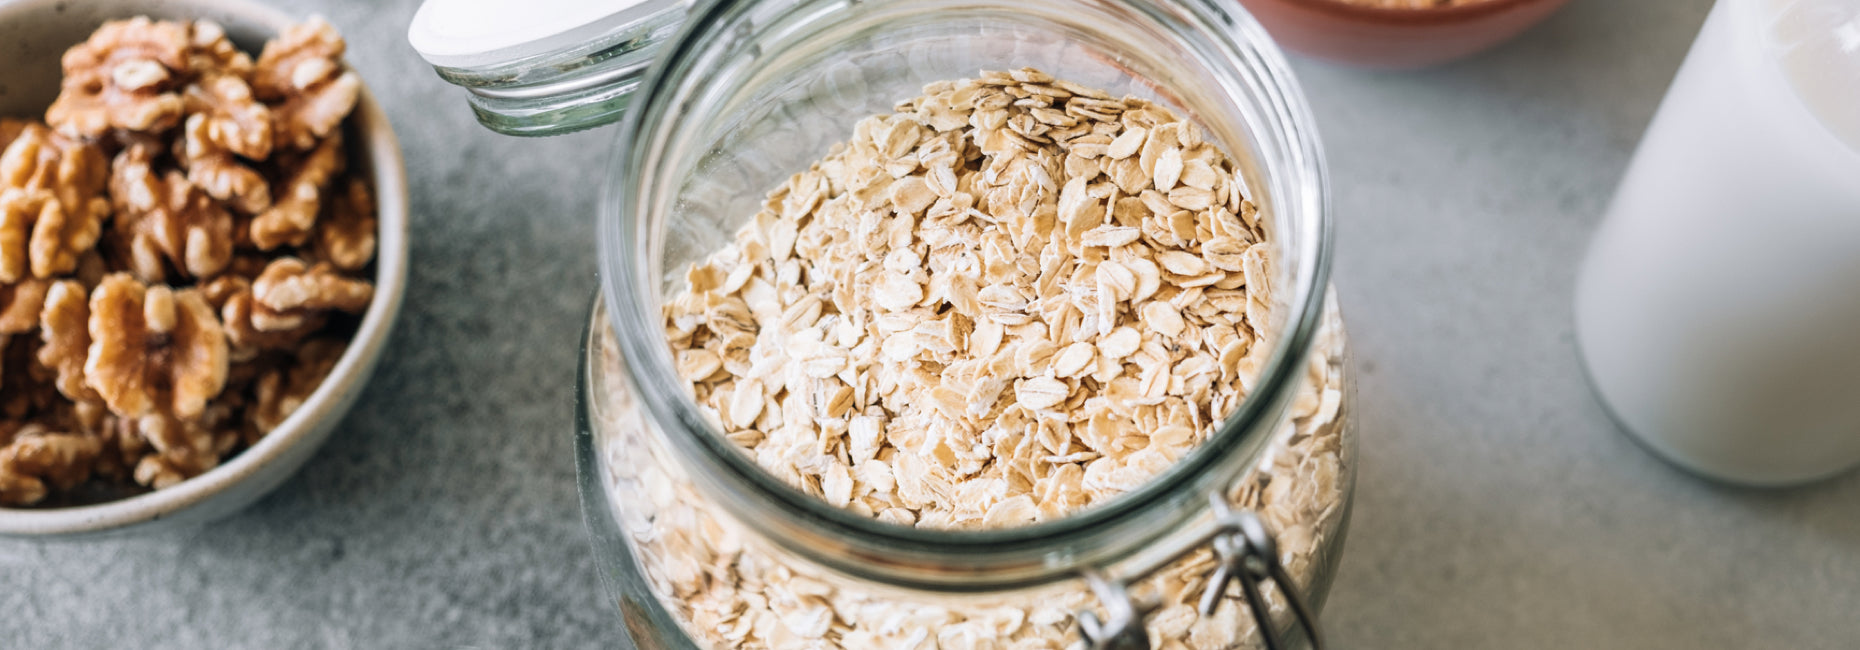 What you need to know about oats